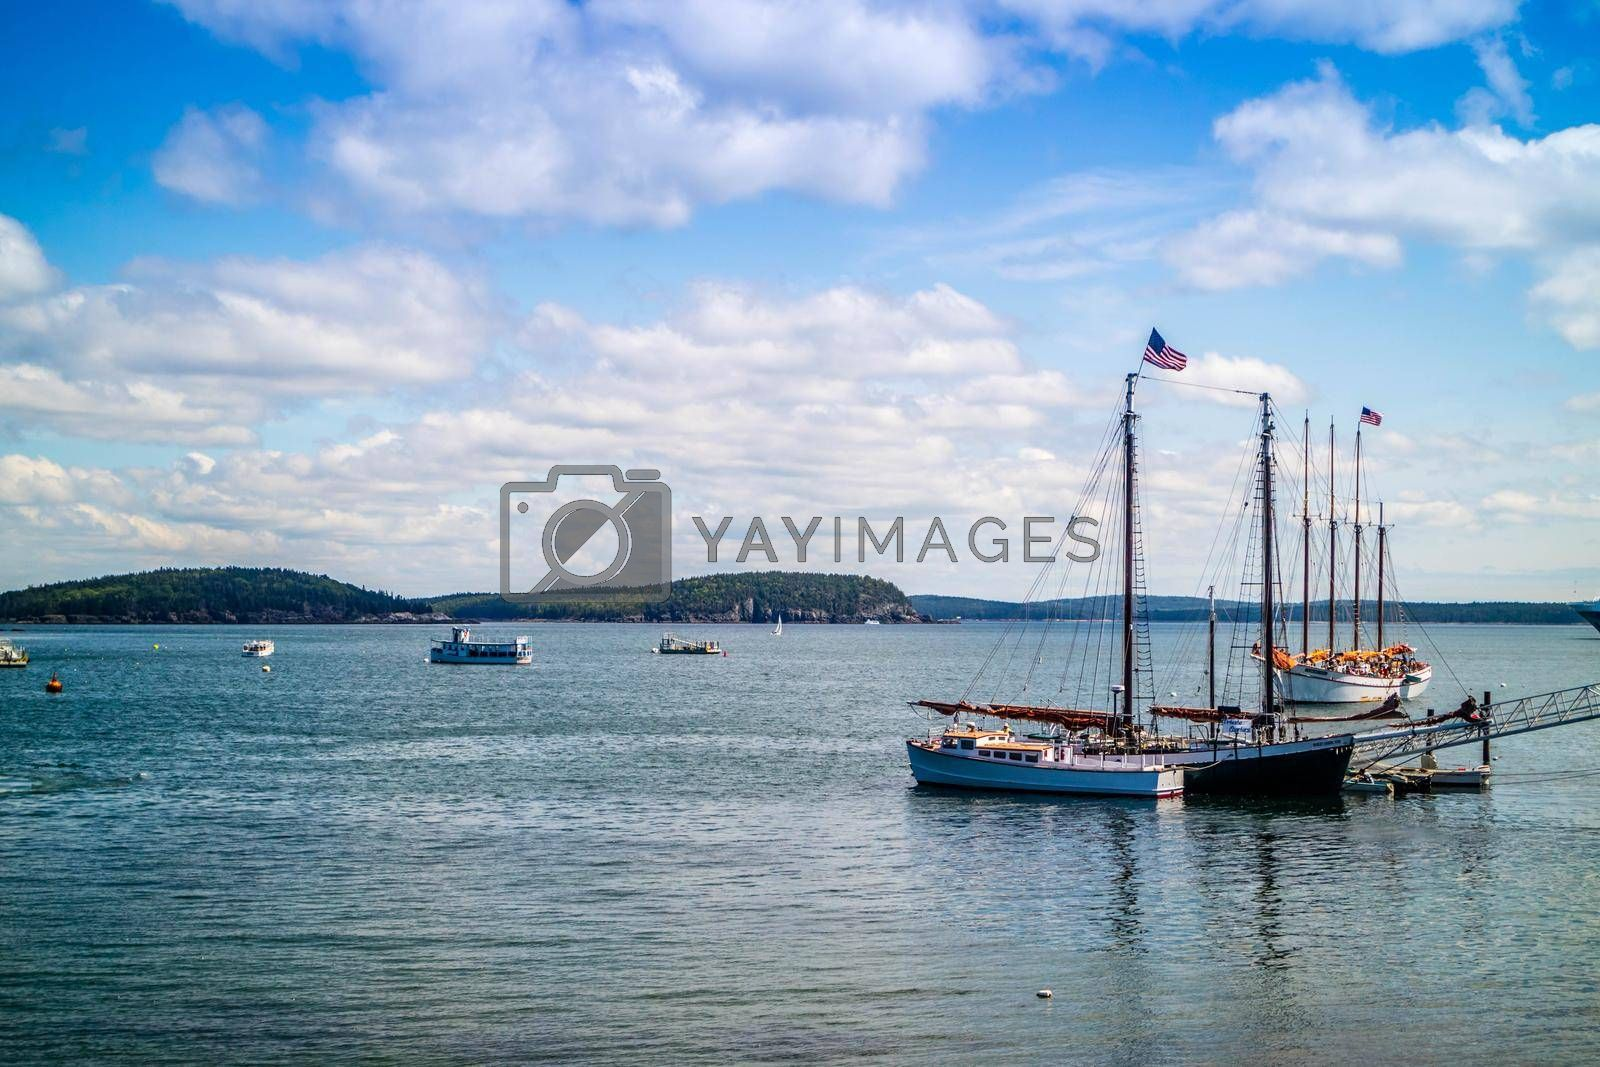 Royalty free image of Bar Harbor, ME, USA - August 19, 2018: A sailing yacht boat cruising along the shore of Bar Harbor by cherialguire